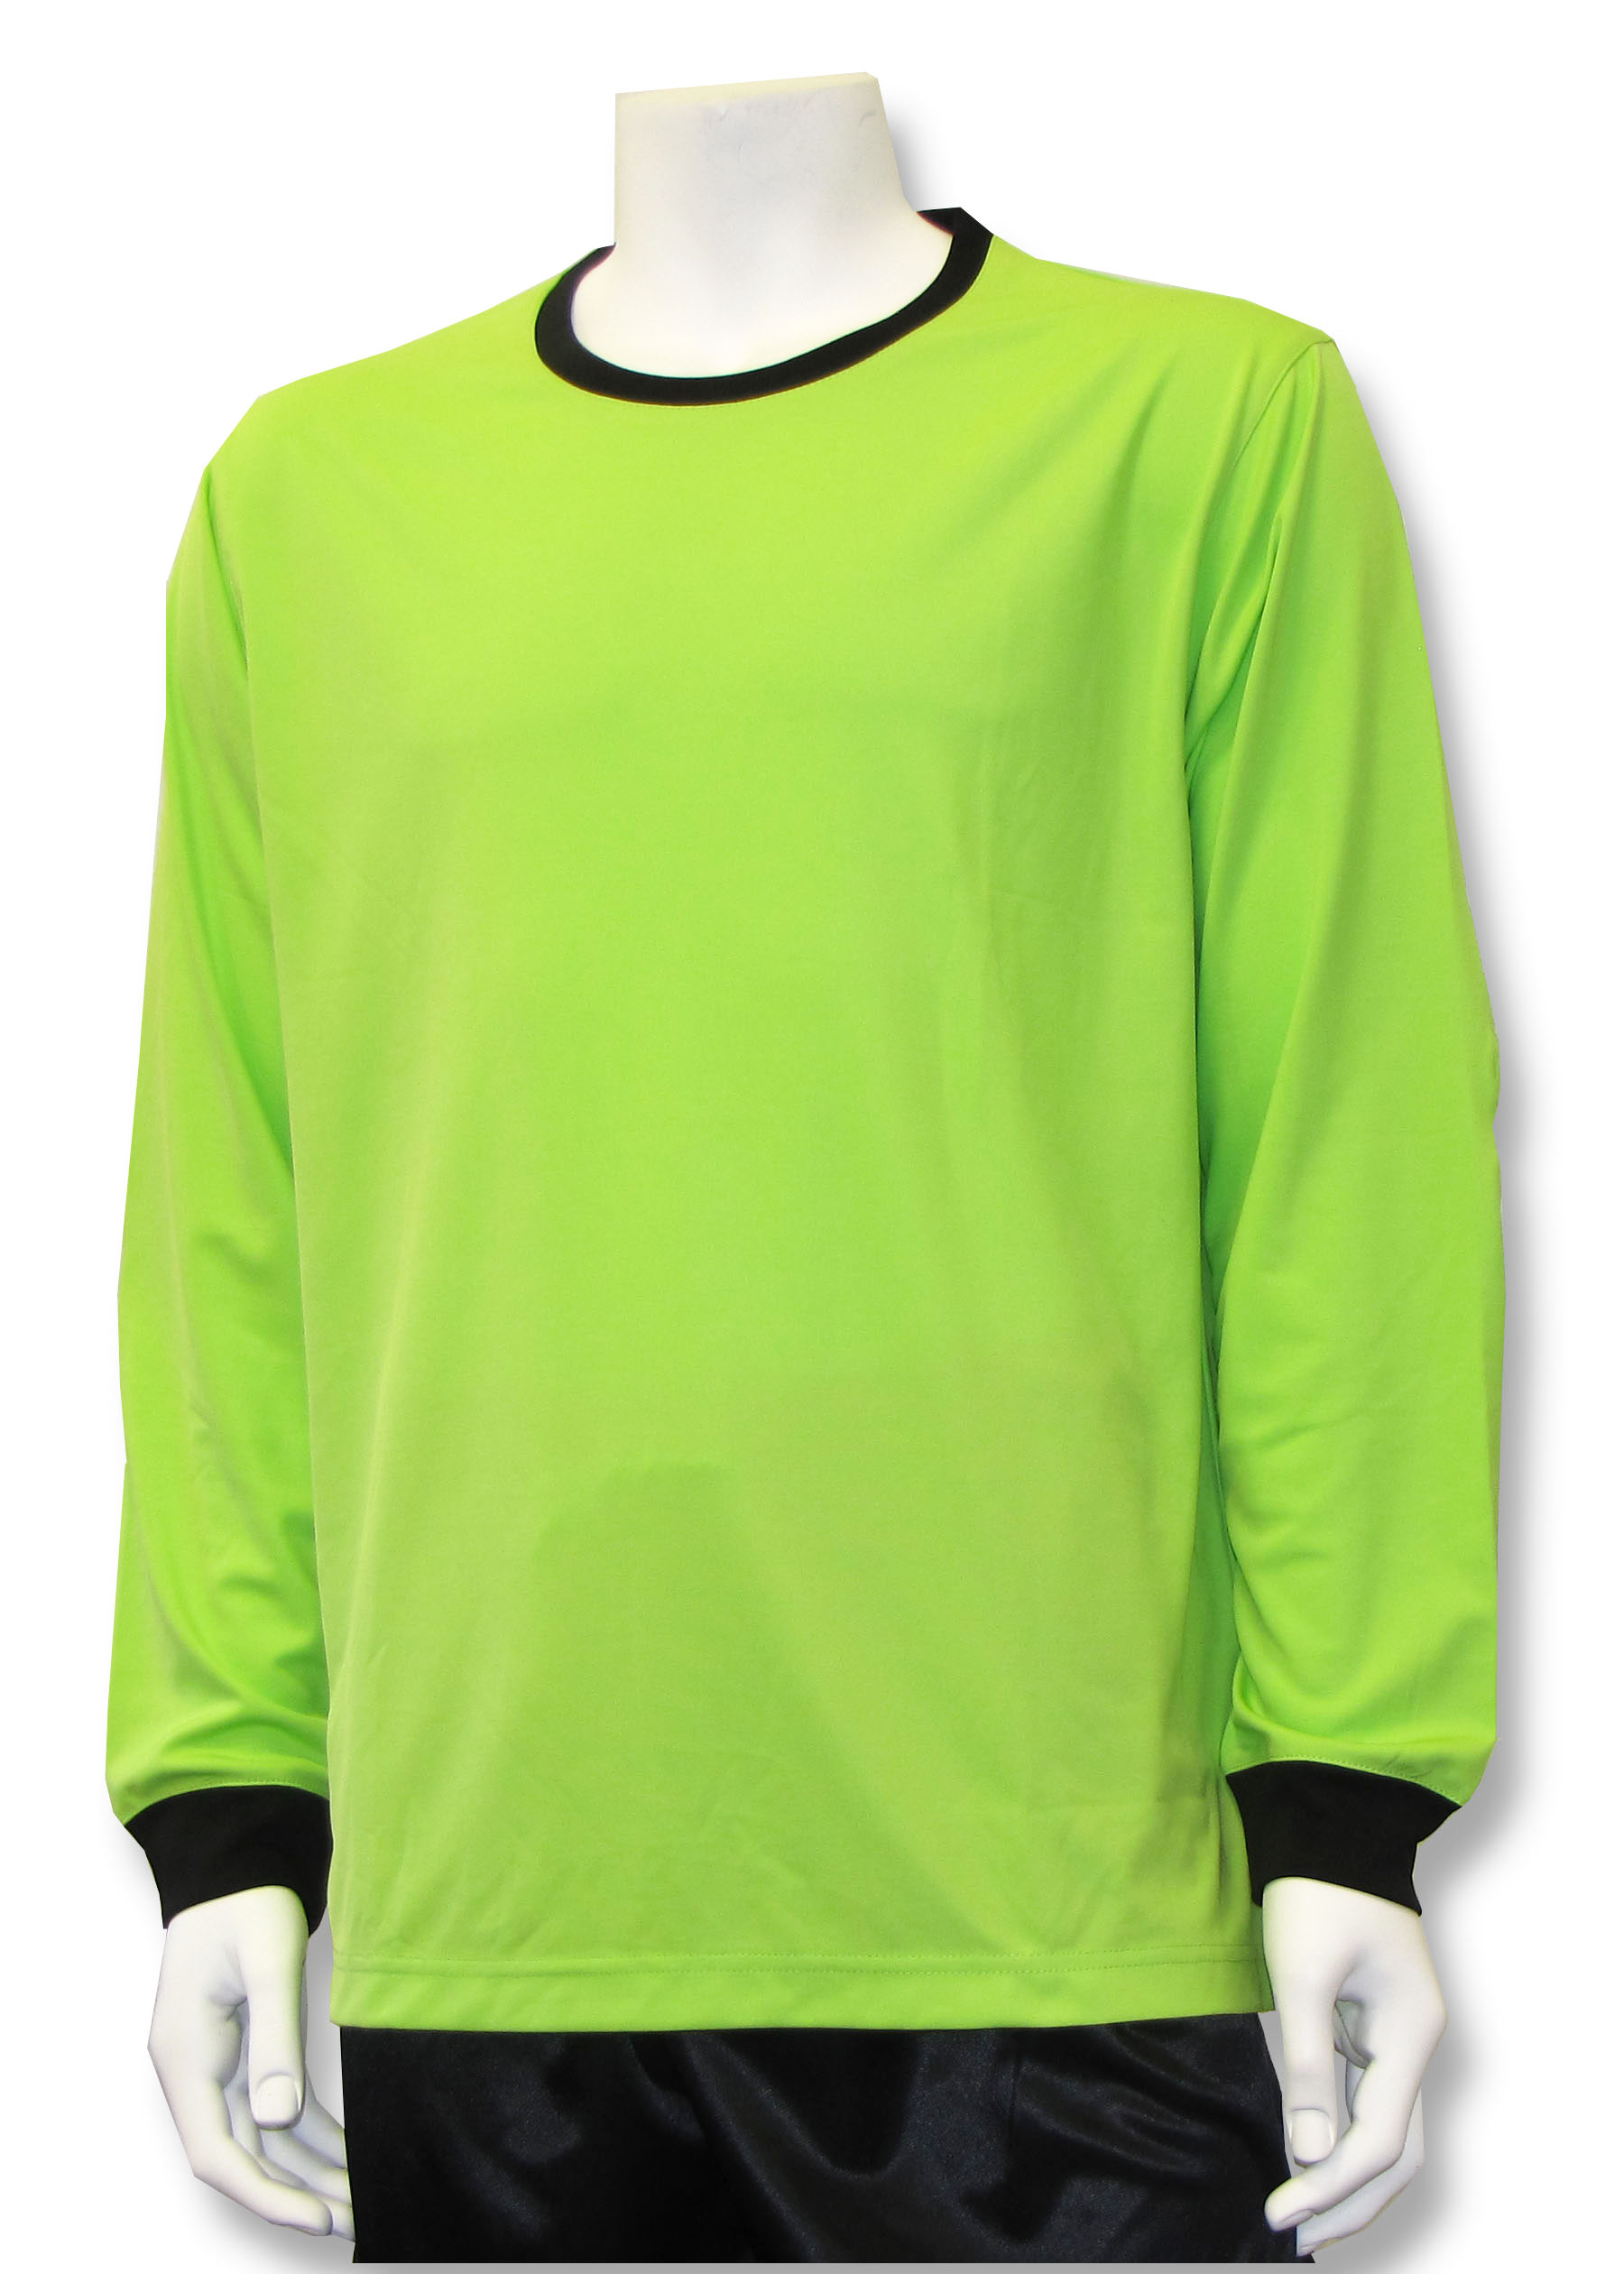 Long sleeve soccer goalie jersey in lime by Code Four Atheltics